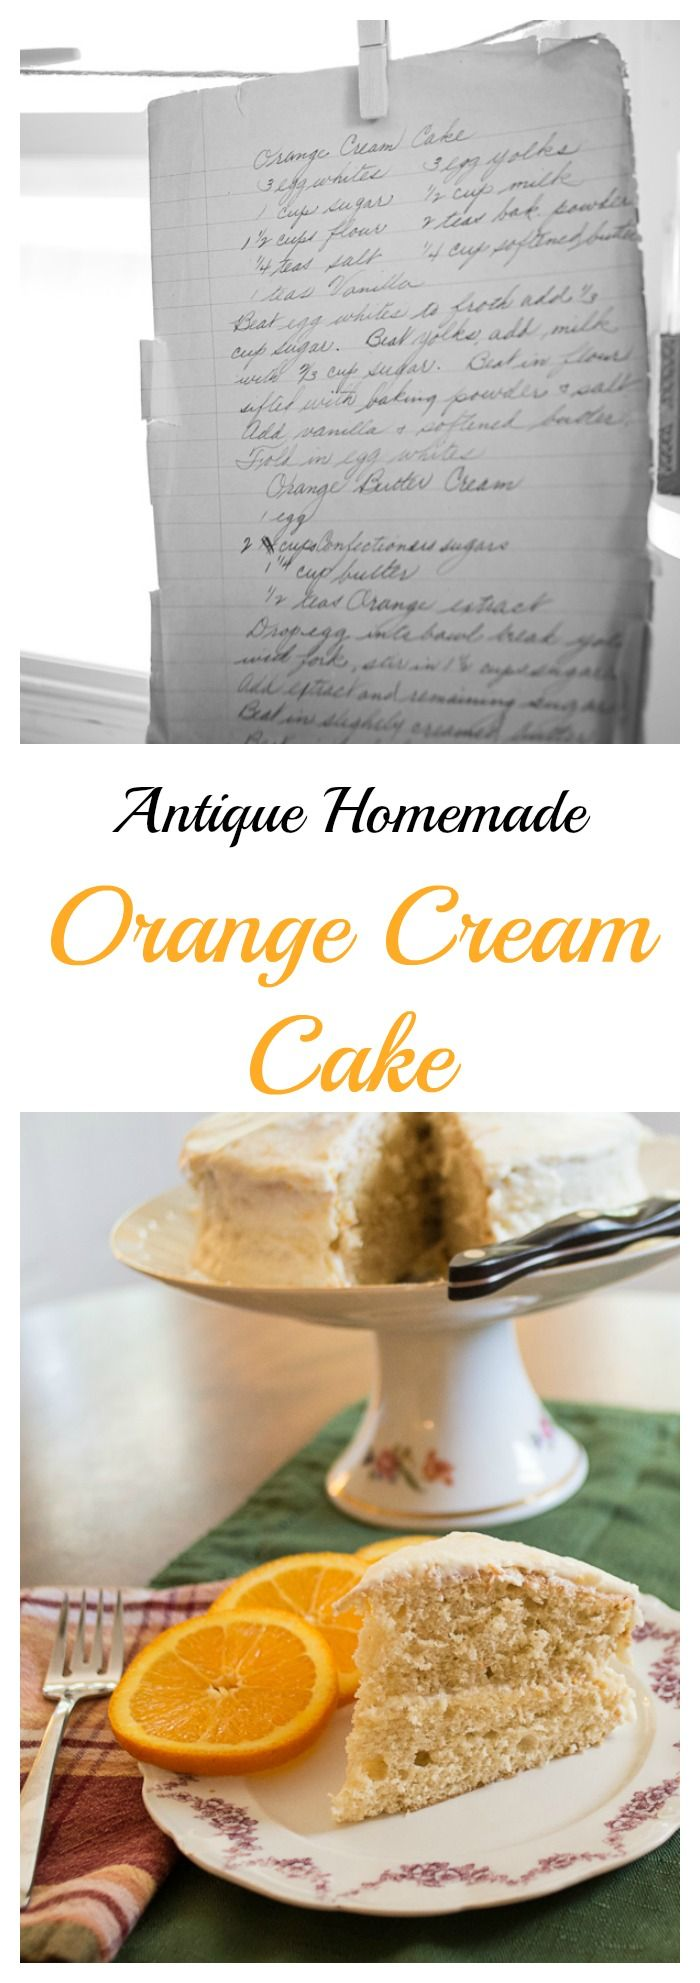 Old time handwritten recipe for Orange Cream Cake - bloggingwithapples.com